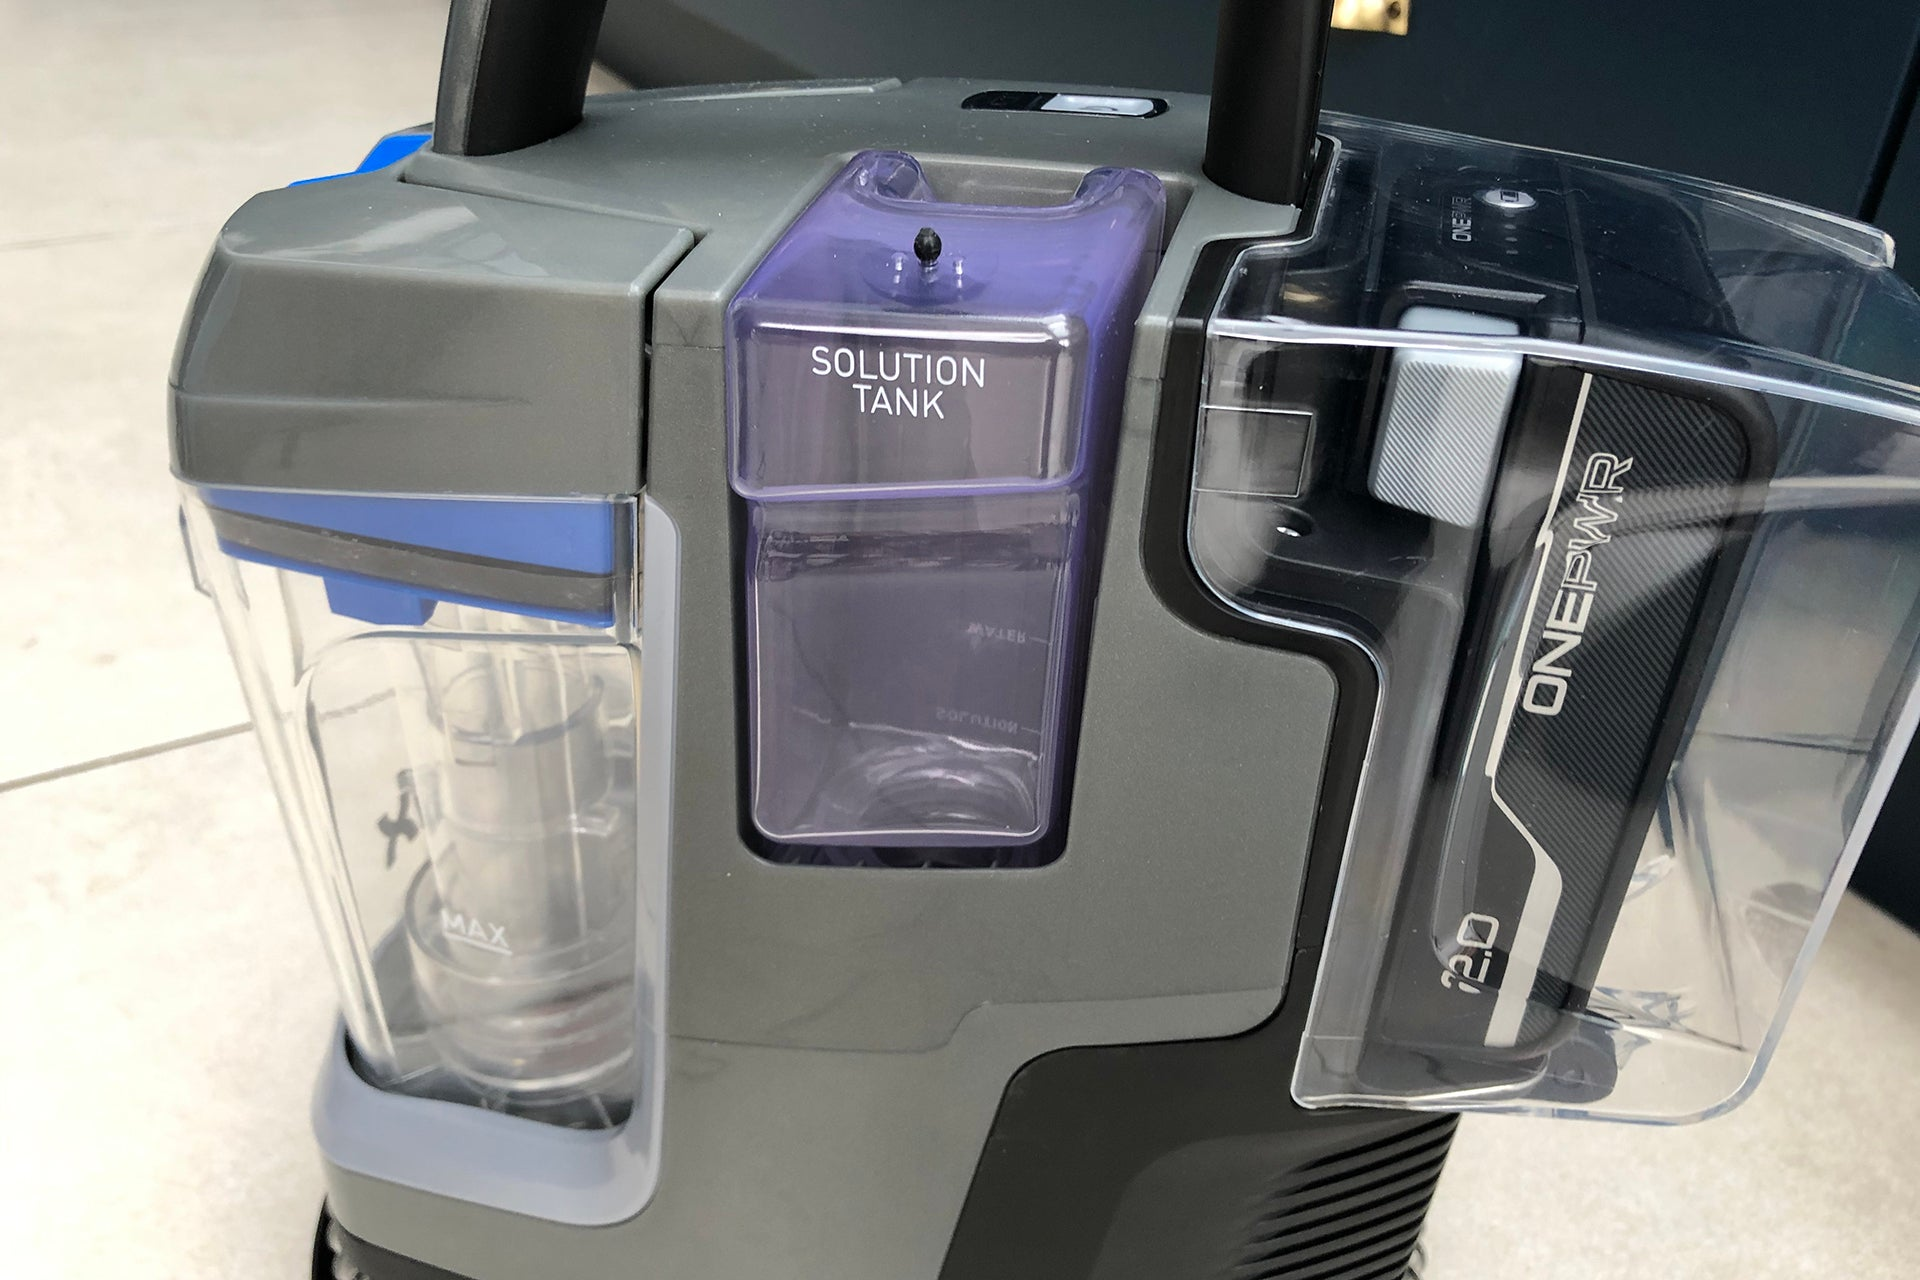 Vax ONEPWR Spotless Go cleaning detergent